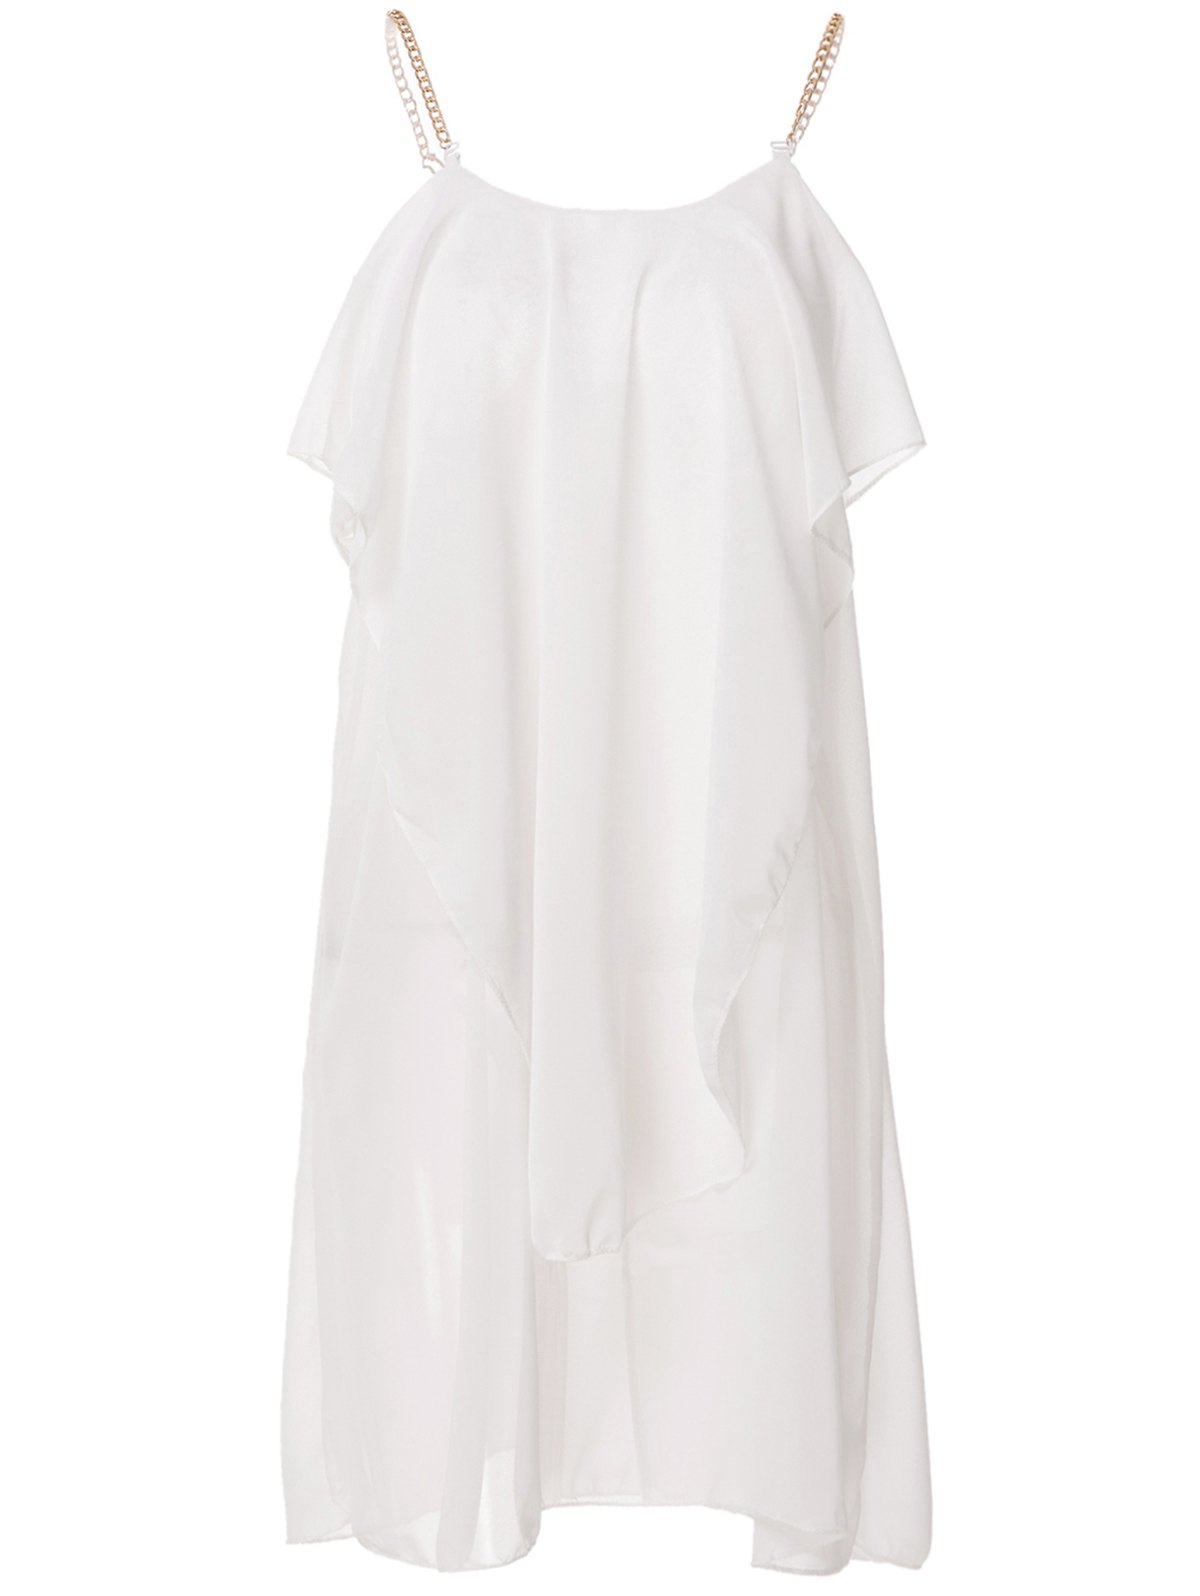 Stylish Women's Spaghetti Strap Solid Color Ruffled Chiffon Dress - WHITE M